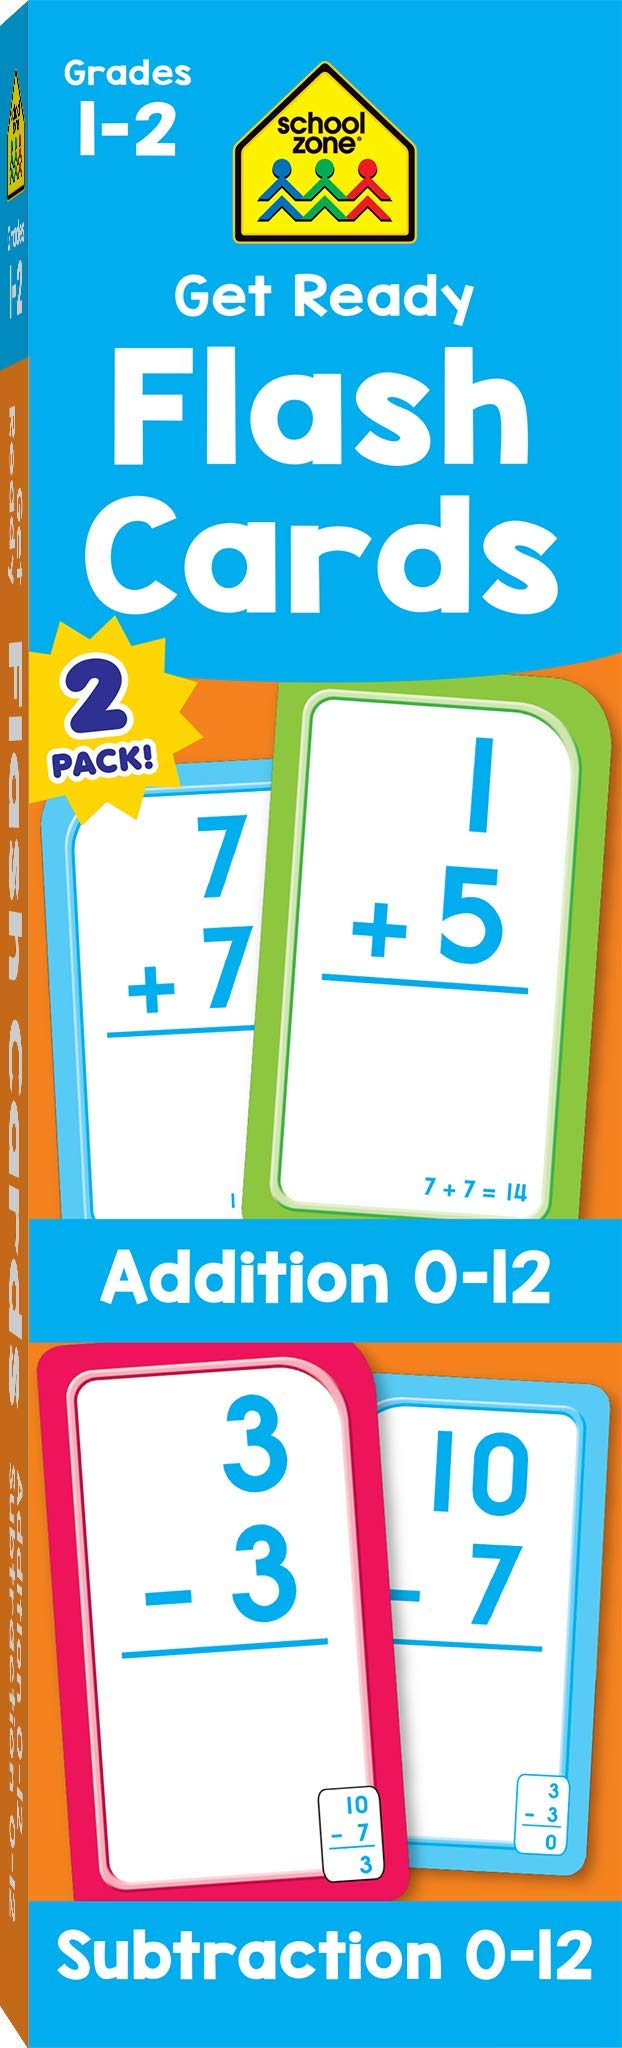 School Zone Addition Subtraction Problem Solving product image